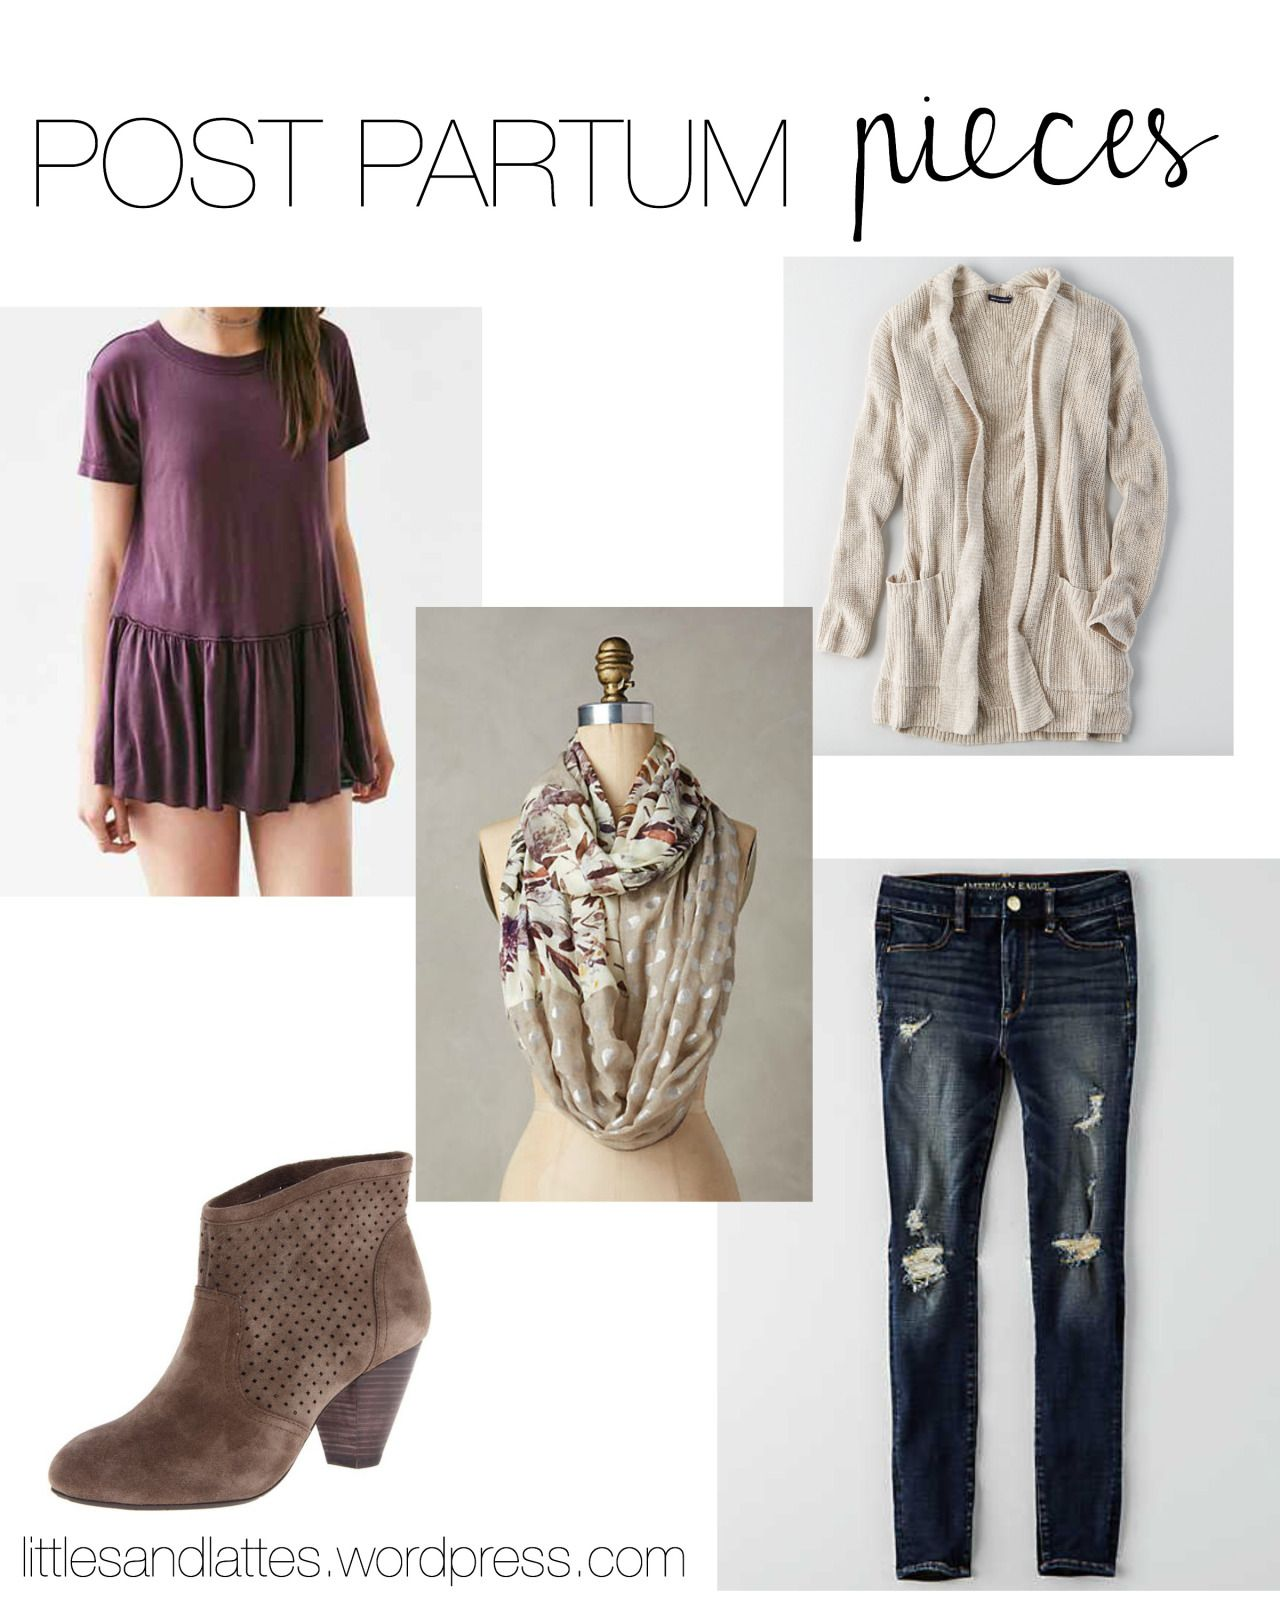 Post Partum Outfits, Maternity Clothes